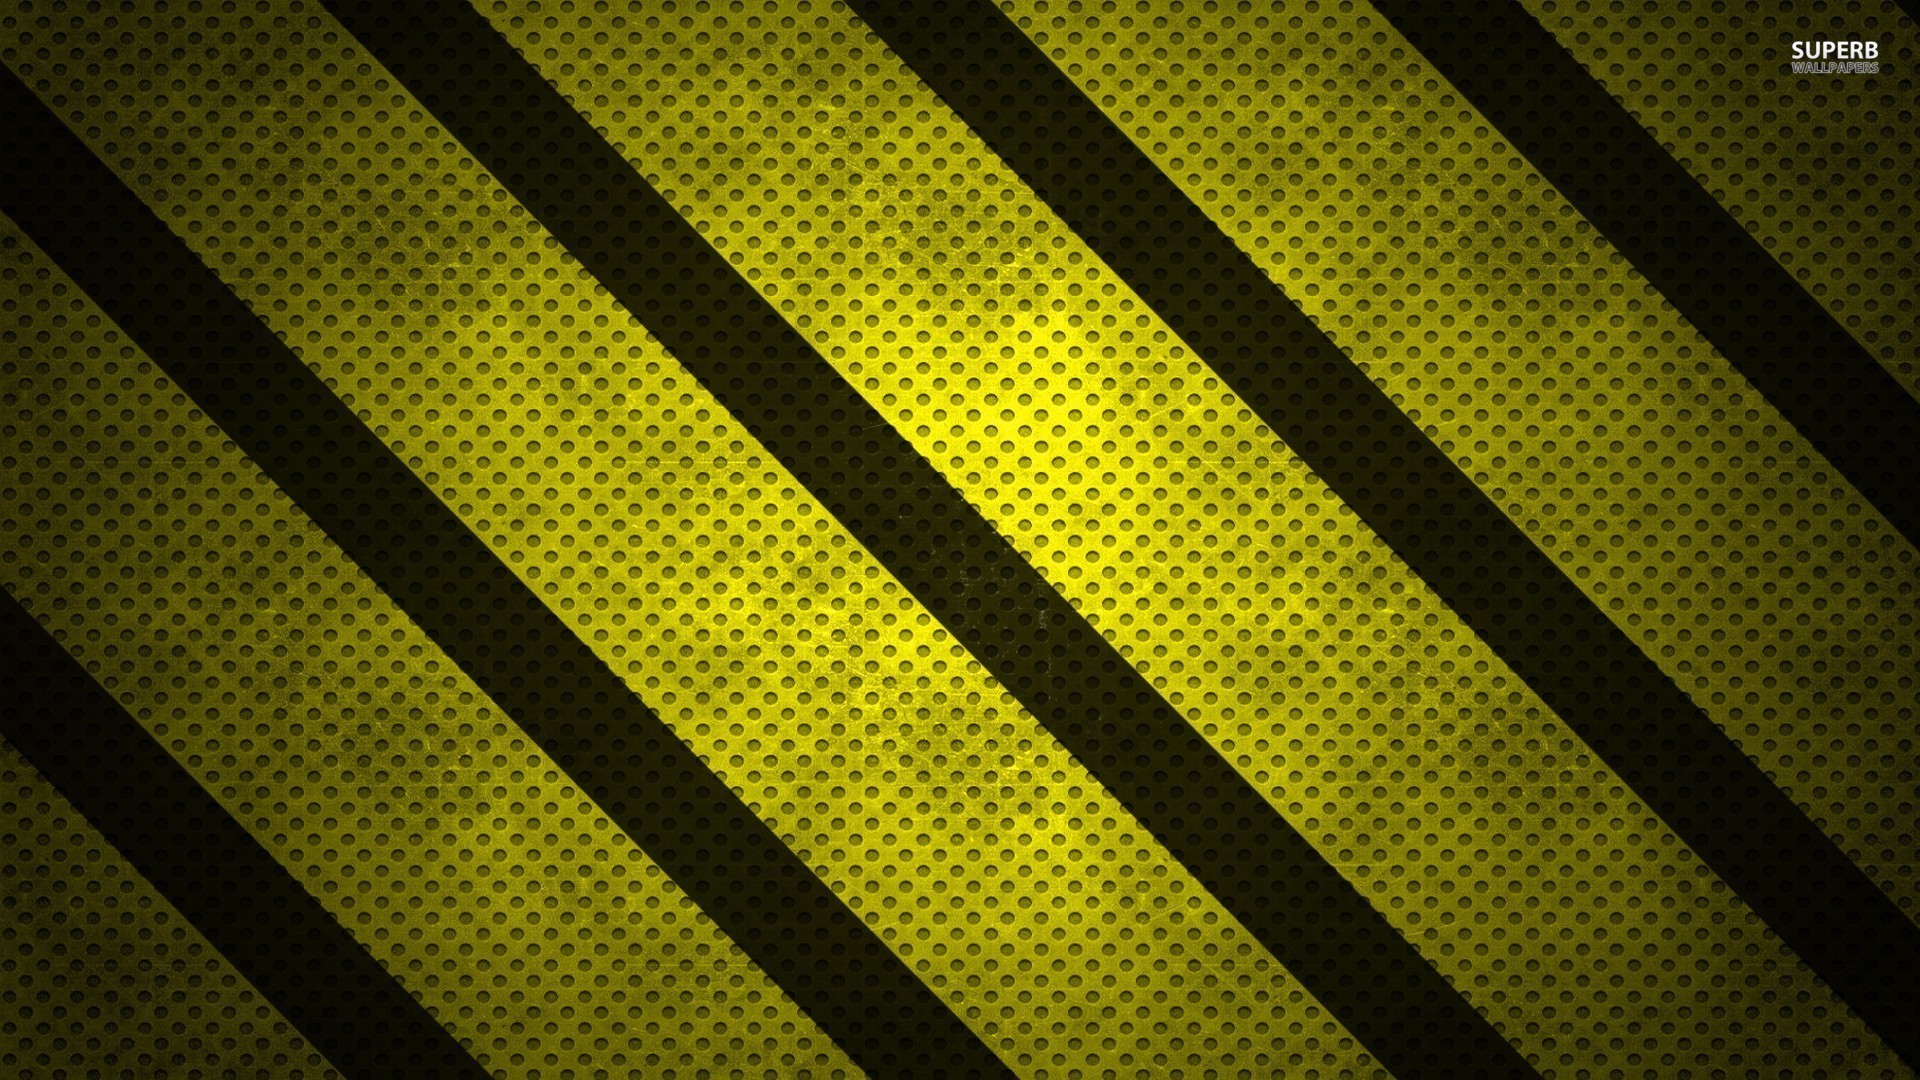 Free High Res Backgrounds wallpaper x   Wallpapers 4k   Pinterest   Yellow  background and Wallpaper